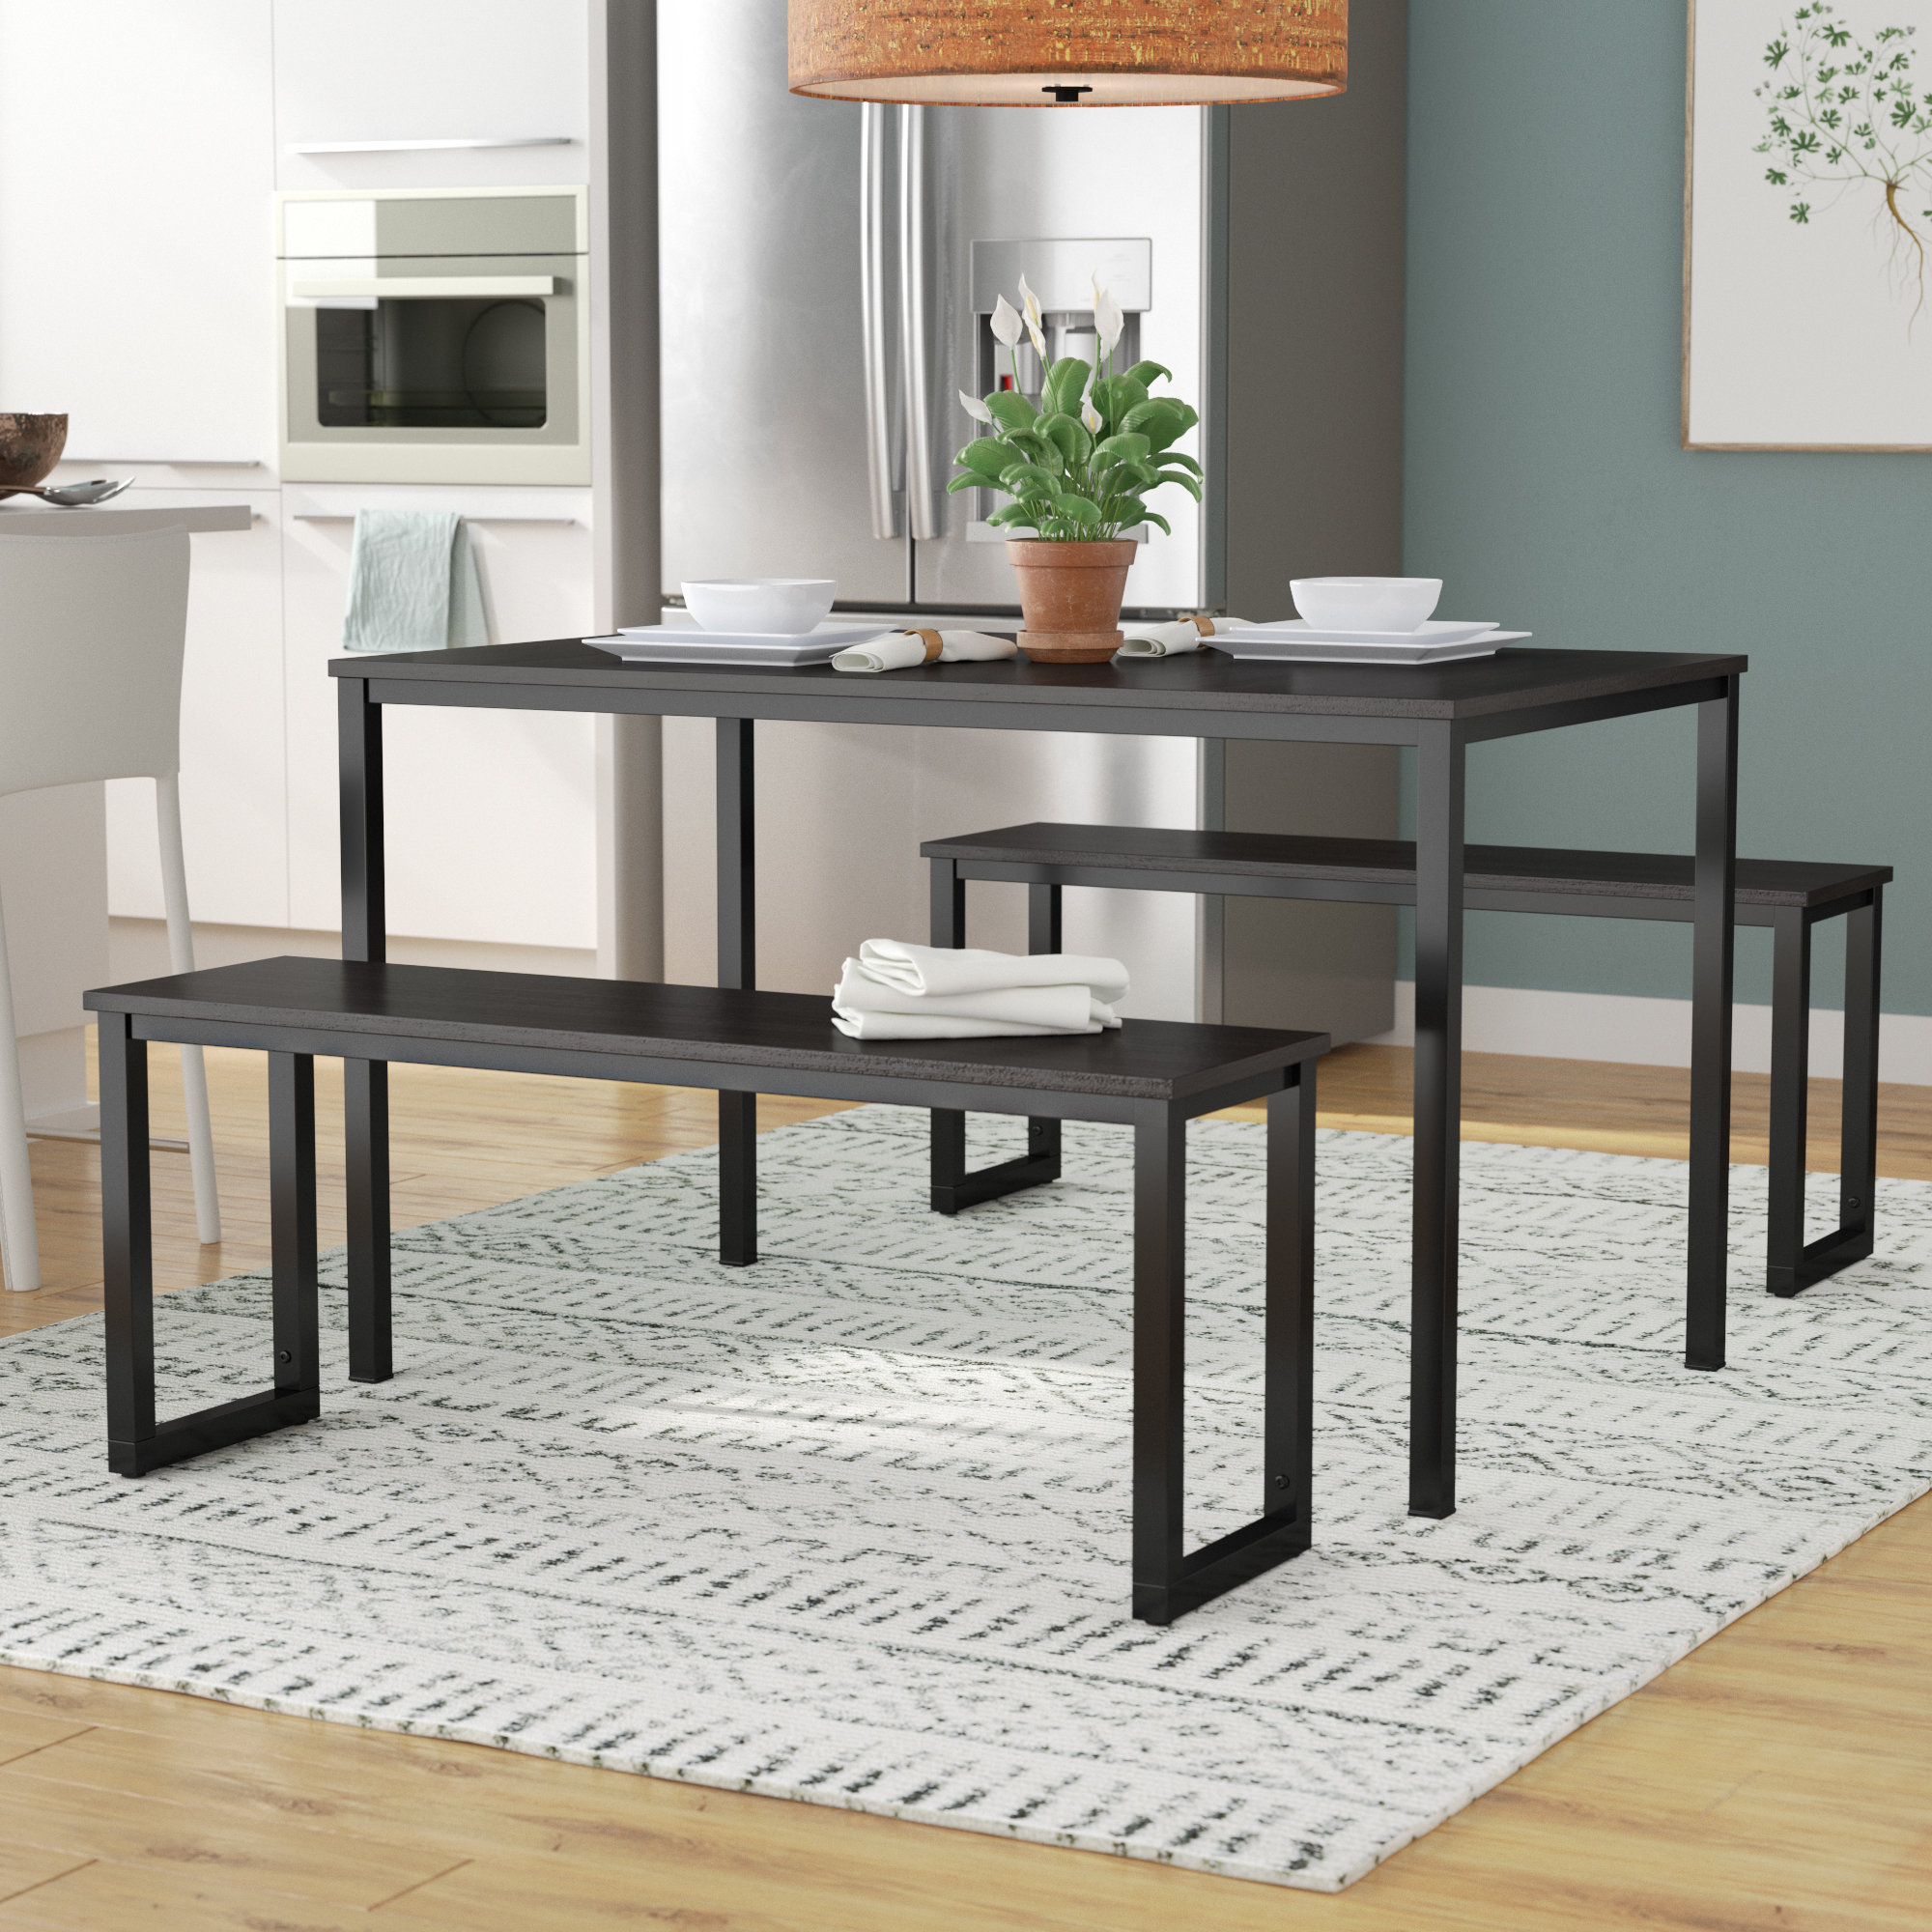 Wayfair With Regard To Well Known Partin 3 Piece Dining Sets (View 2 of 25)